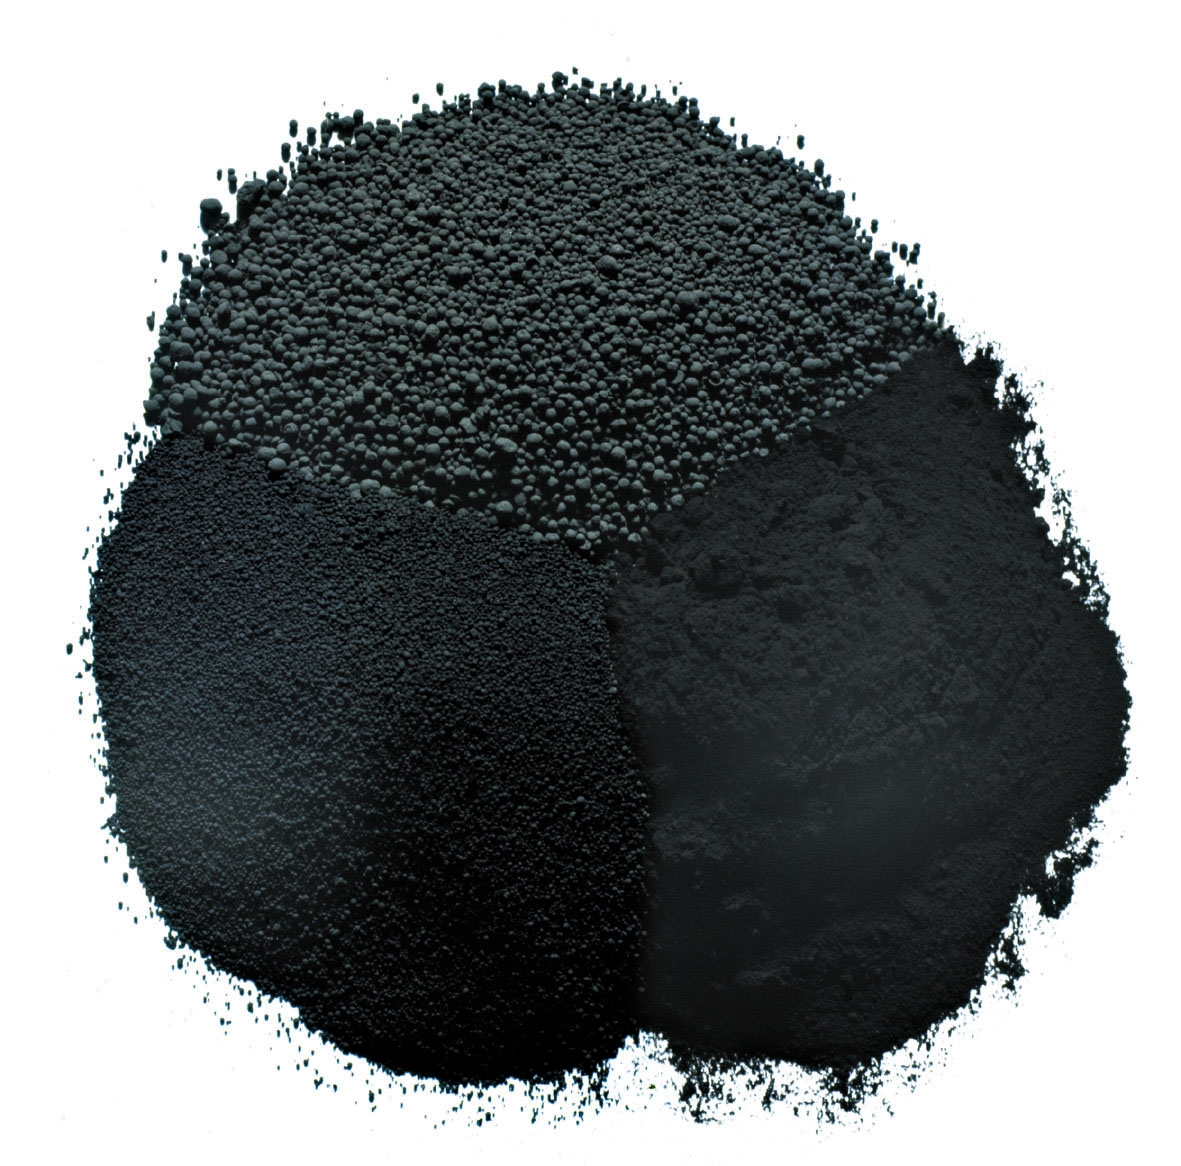 New-market-study-about-the-world-market-for-Carbon-Black.jpg